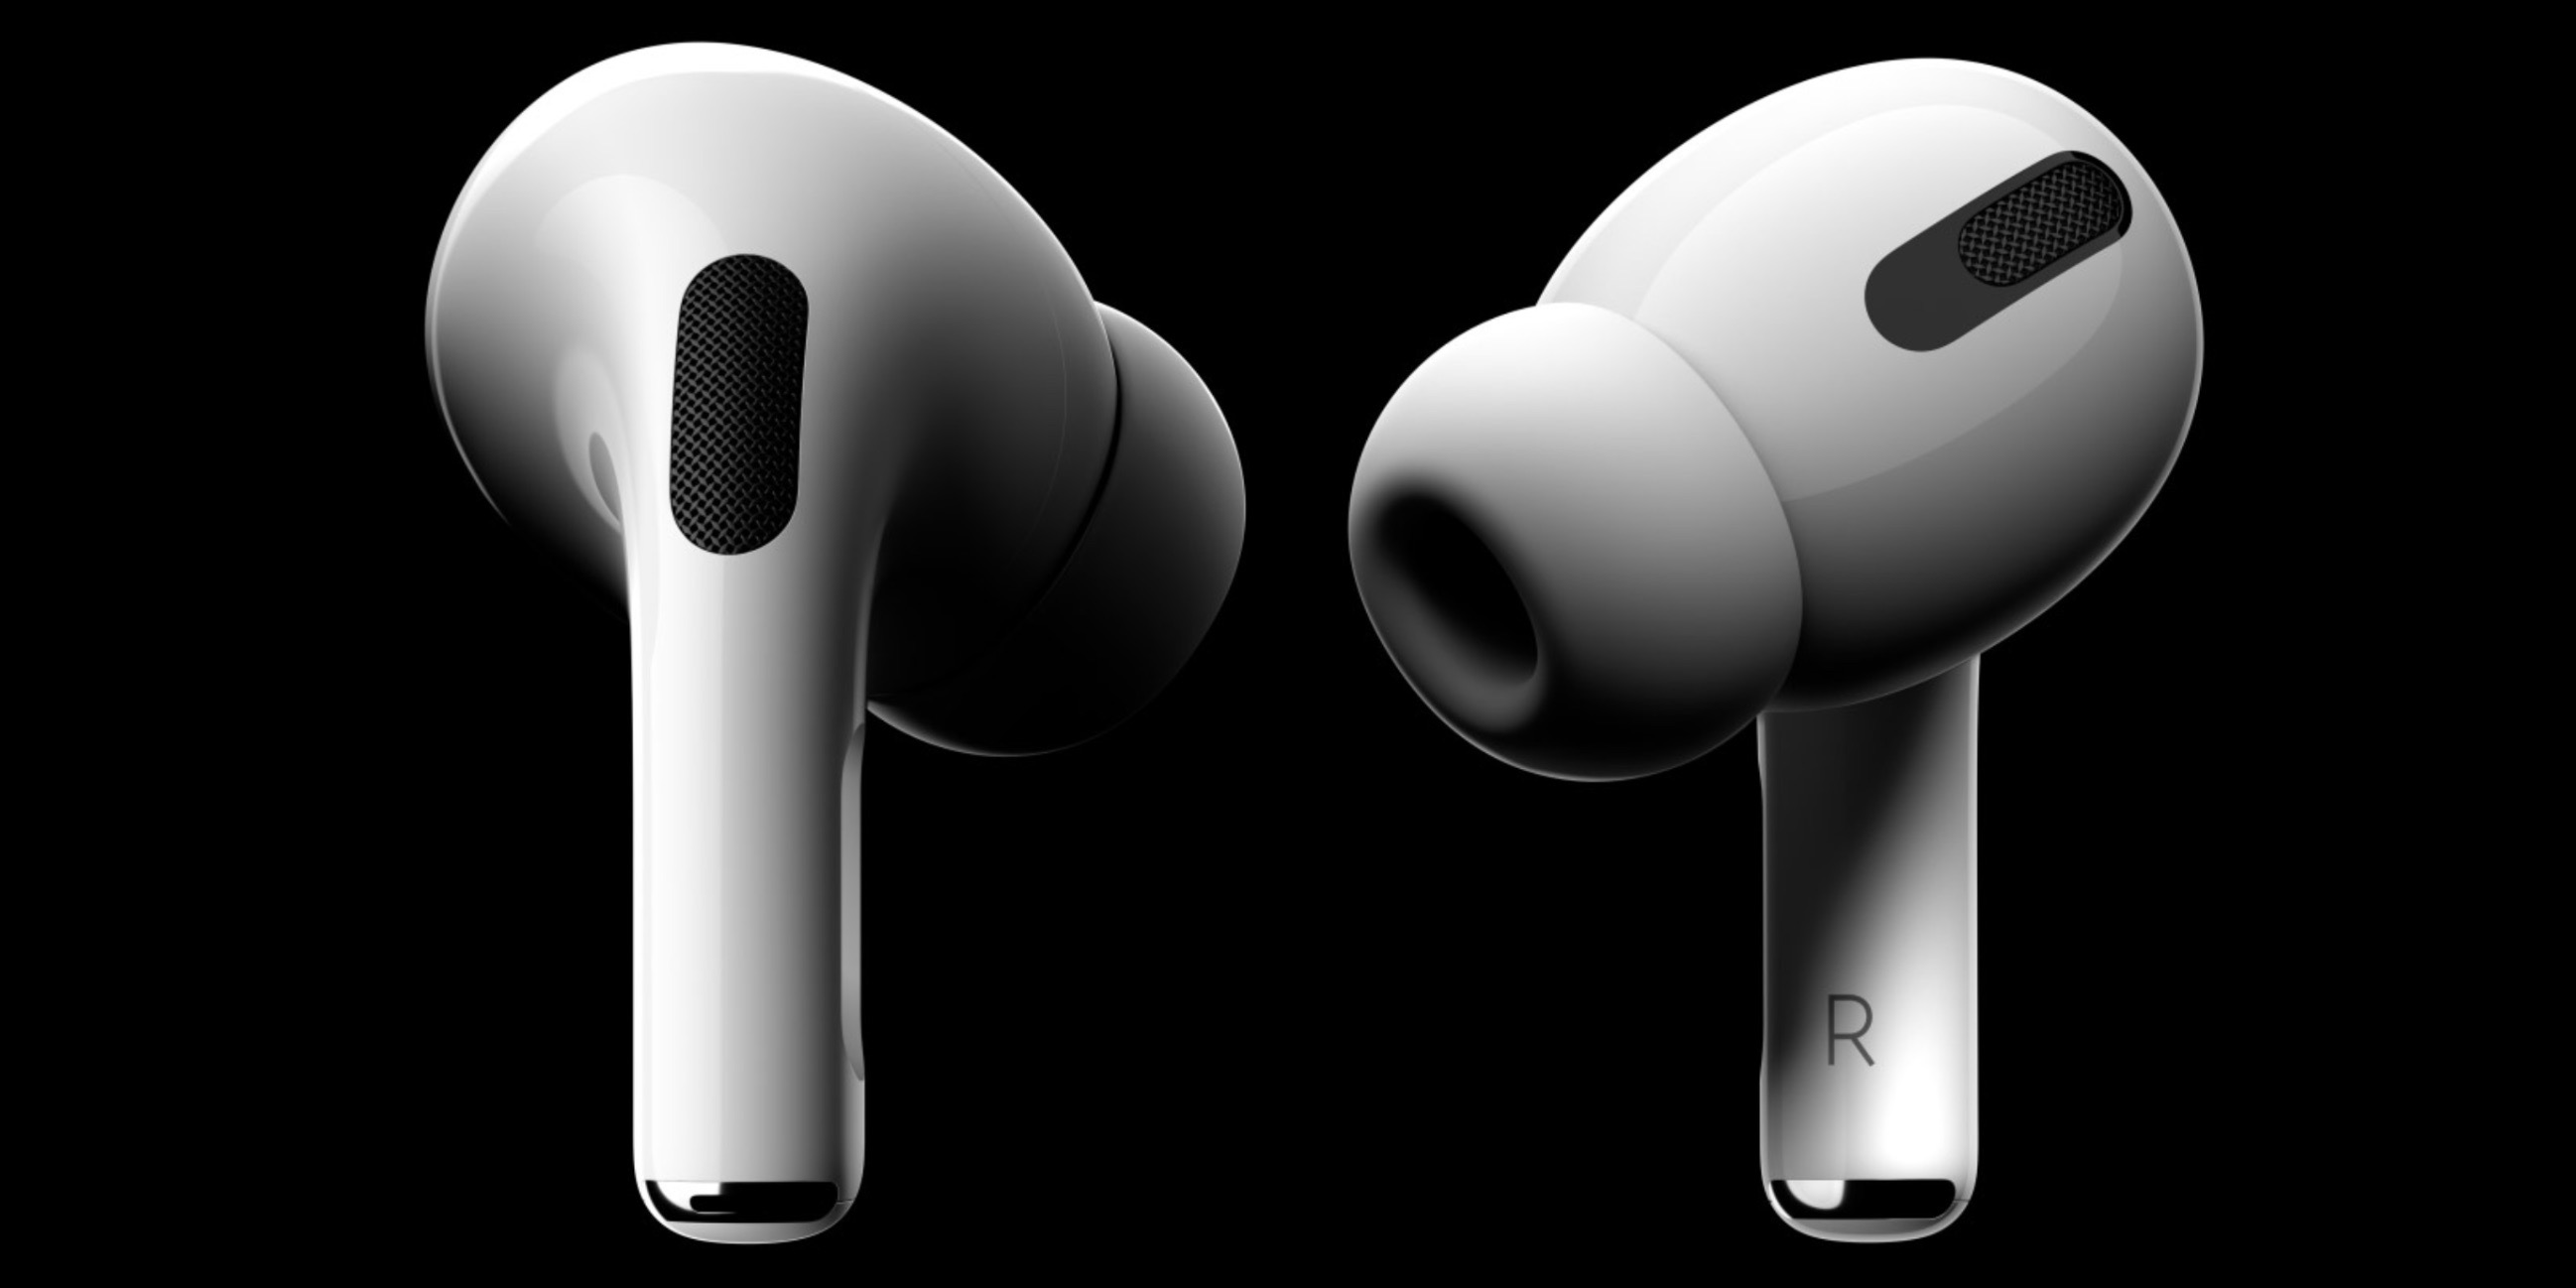 Airpods Pro Vs Airpods Comparison On Features Size Price 9to5mac